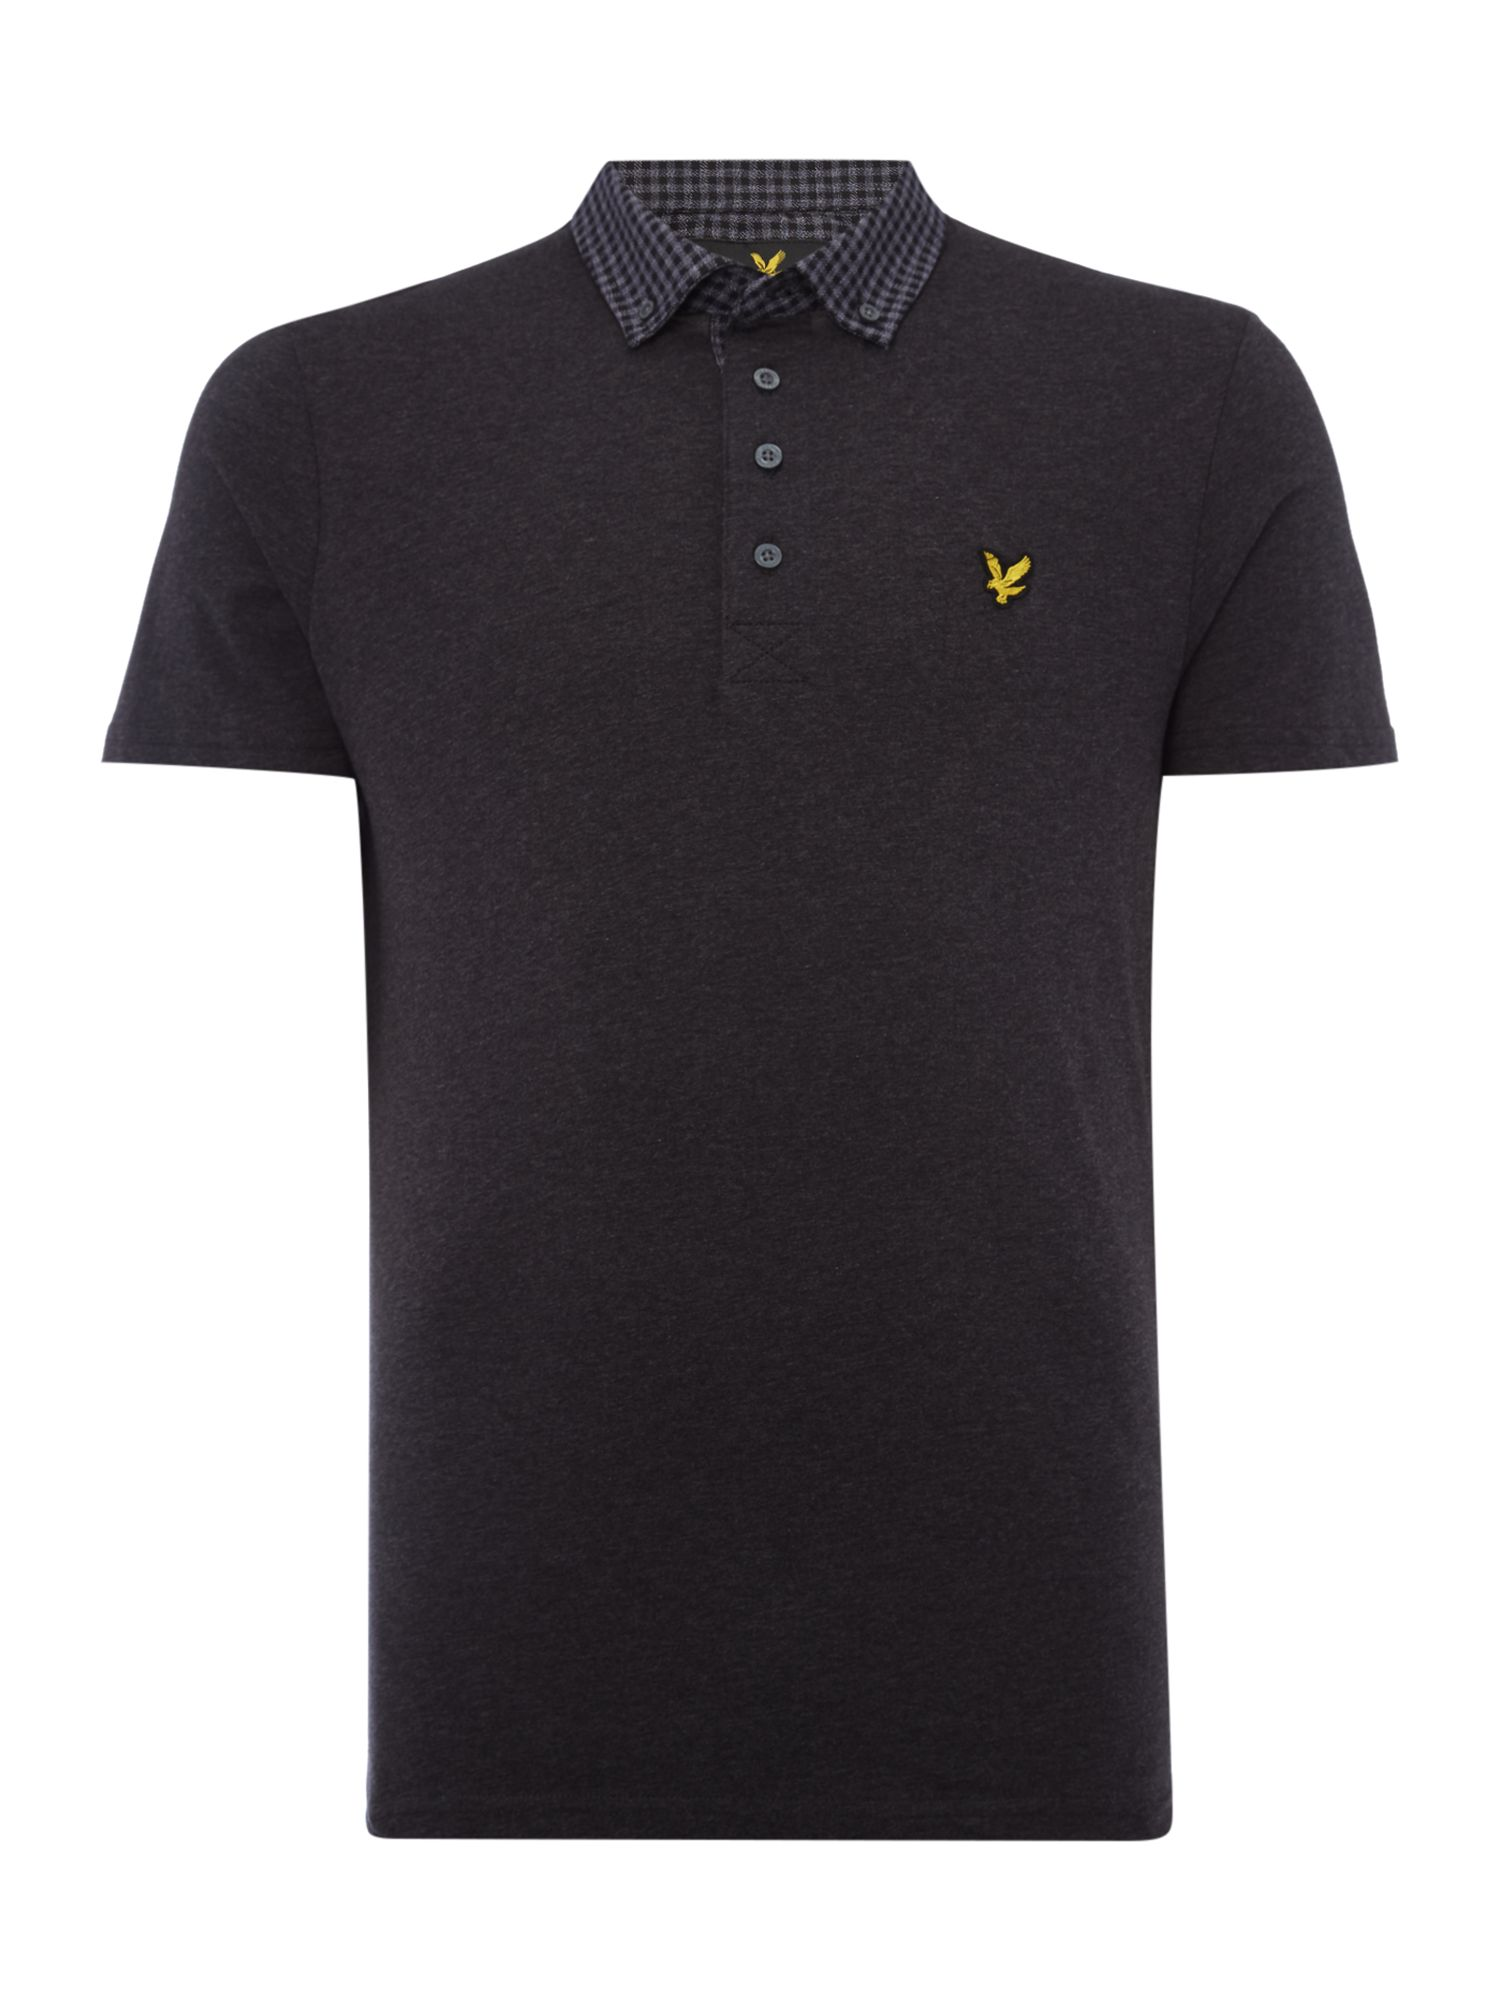 Lyle and Scott Men's Lyle and Scott Short sleeve woven collar jersey polo shirt, Charcoal Marl